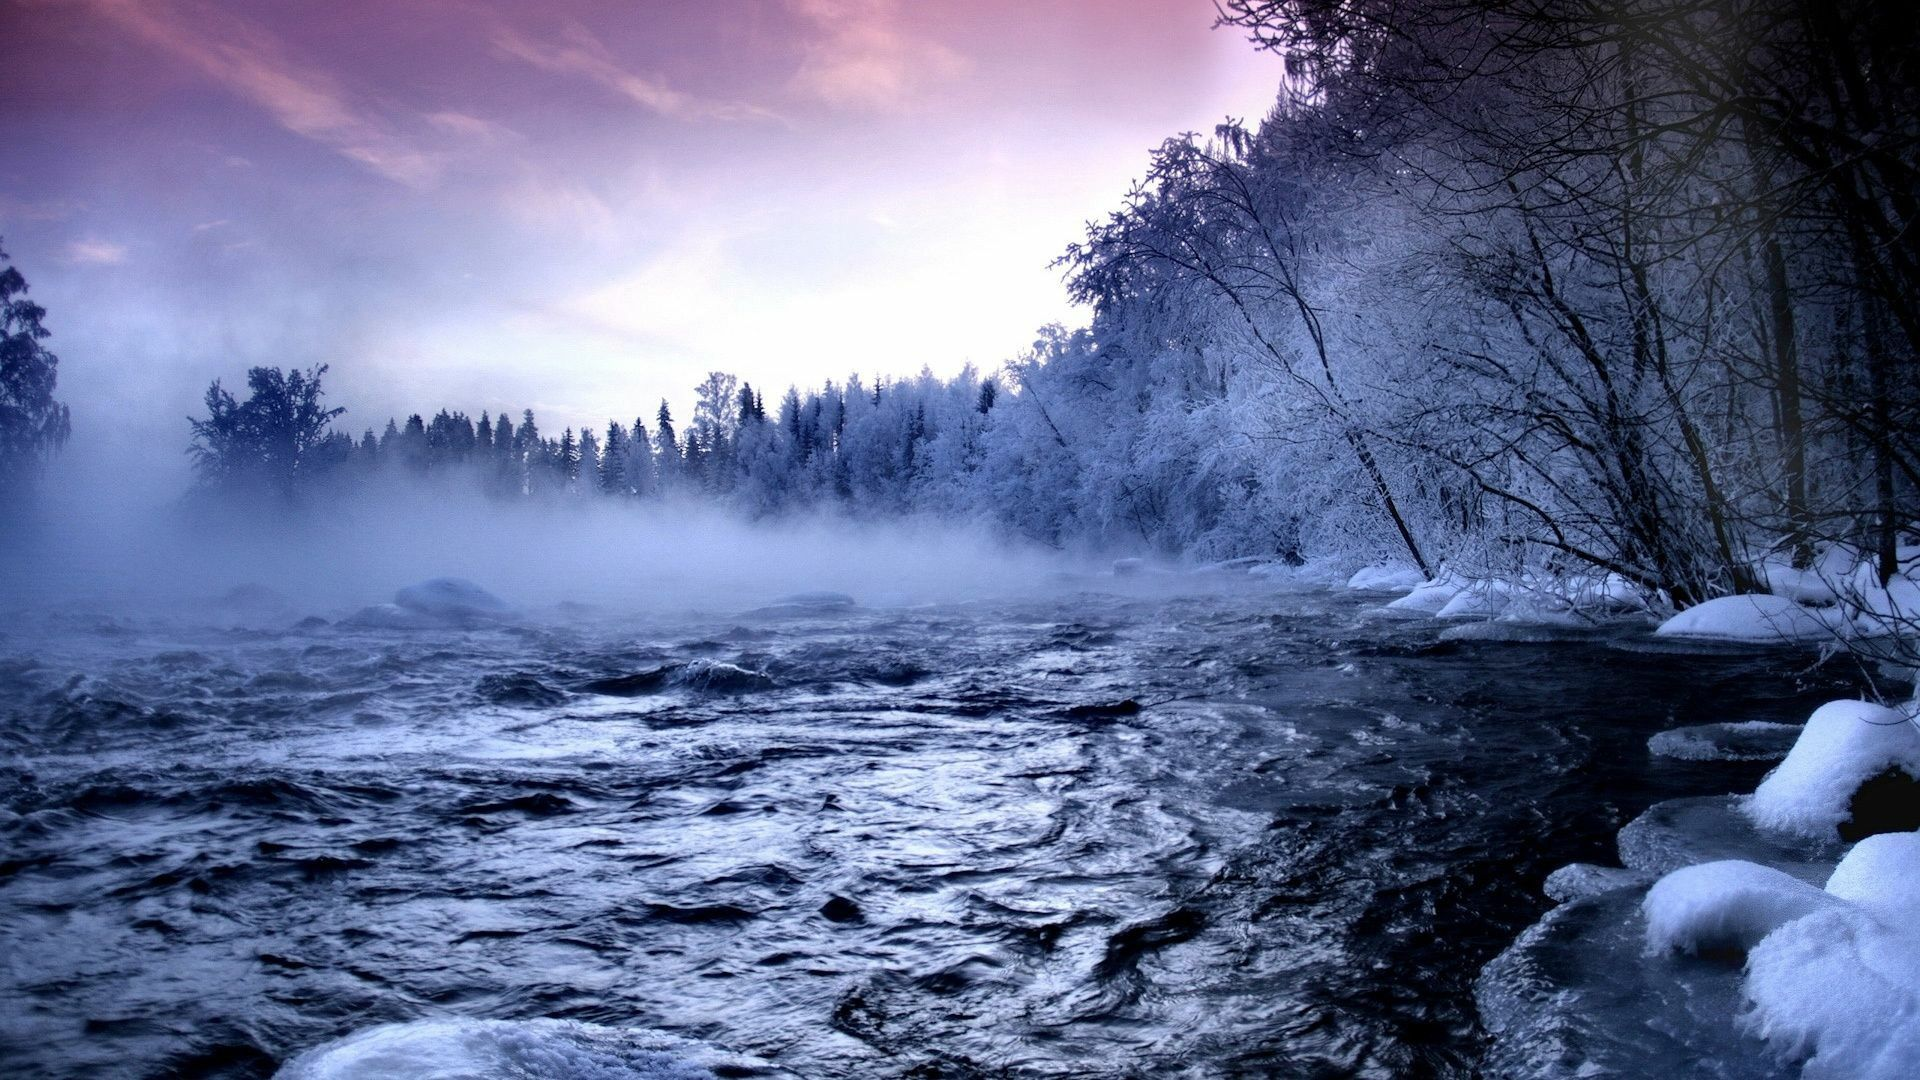 Beautiful Nature Winter Wallpapers High Quality 19201080